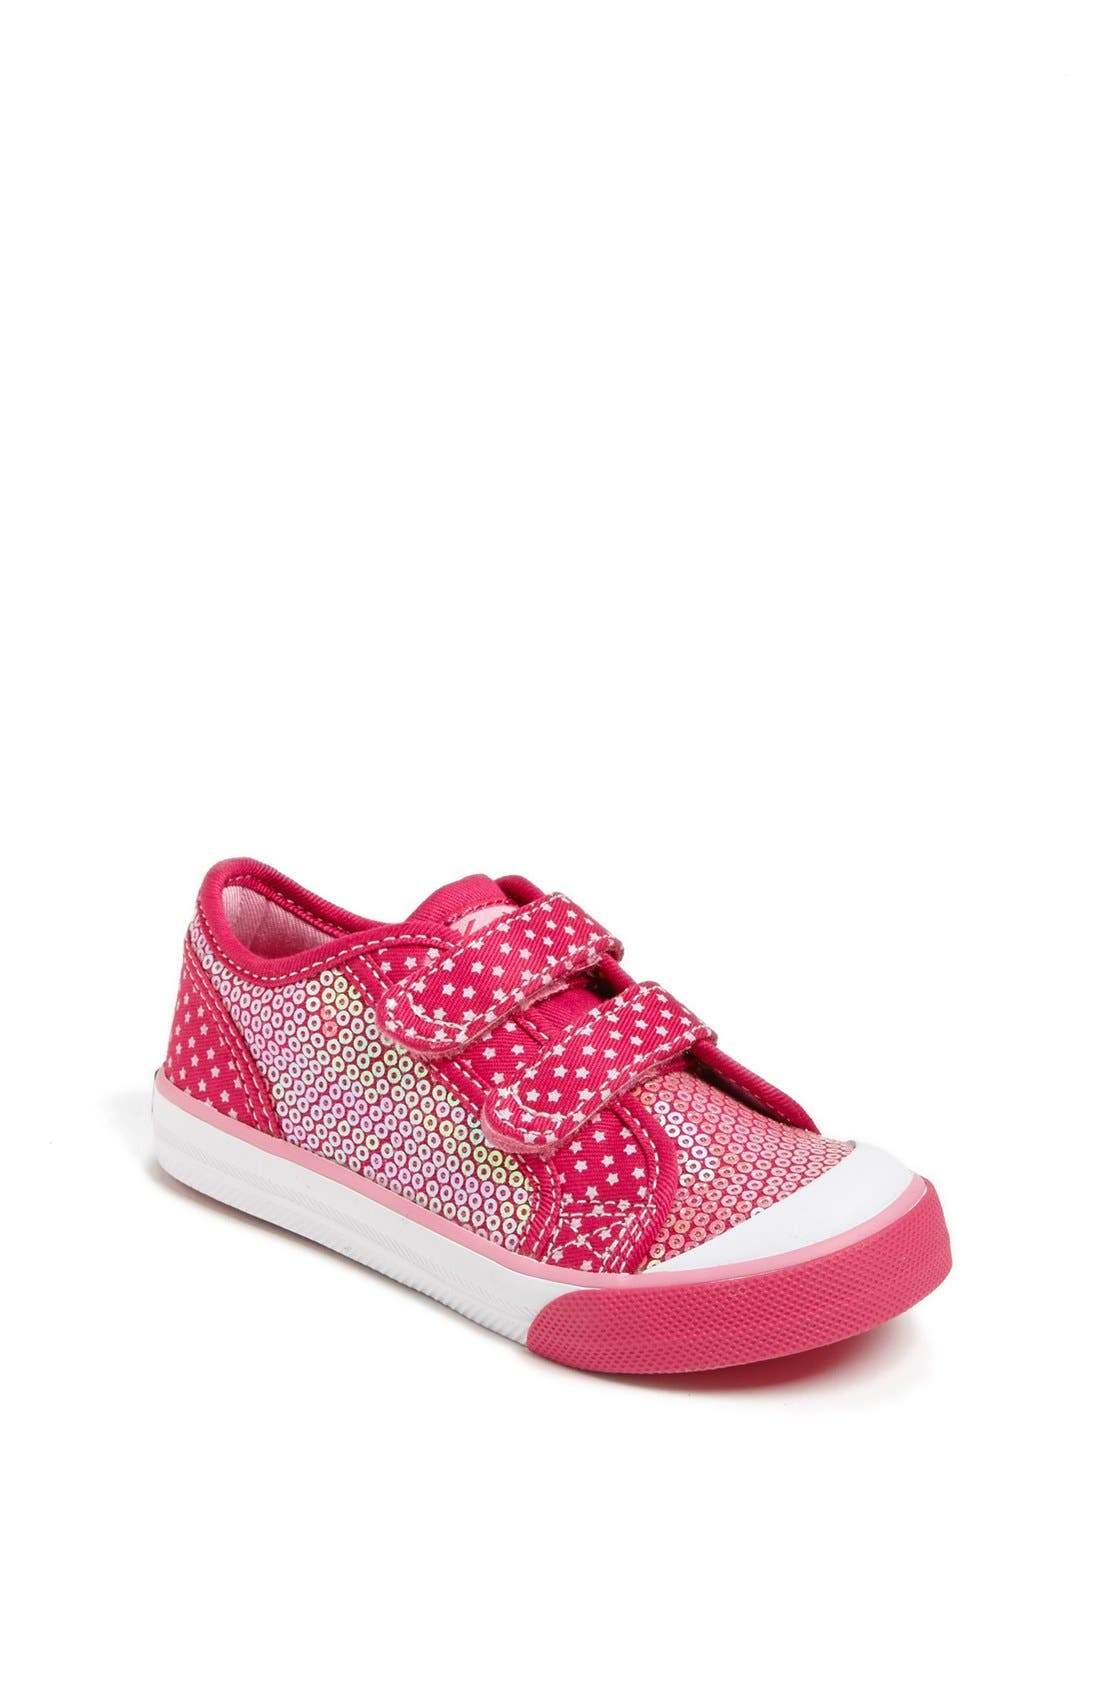 Alternate Image 1 Selected - Keds® 'Sparklynne' Sneaker (Walker & Toddler)